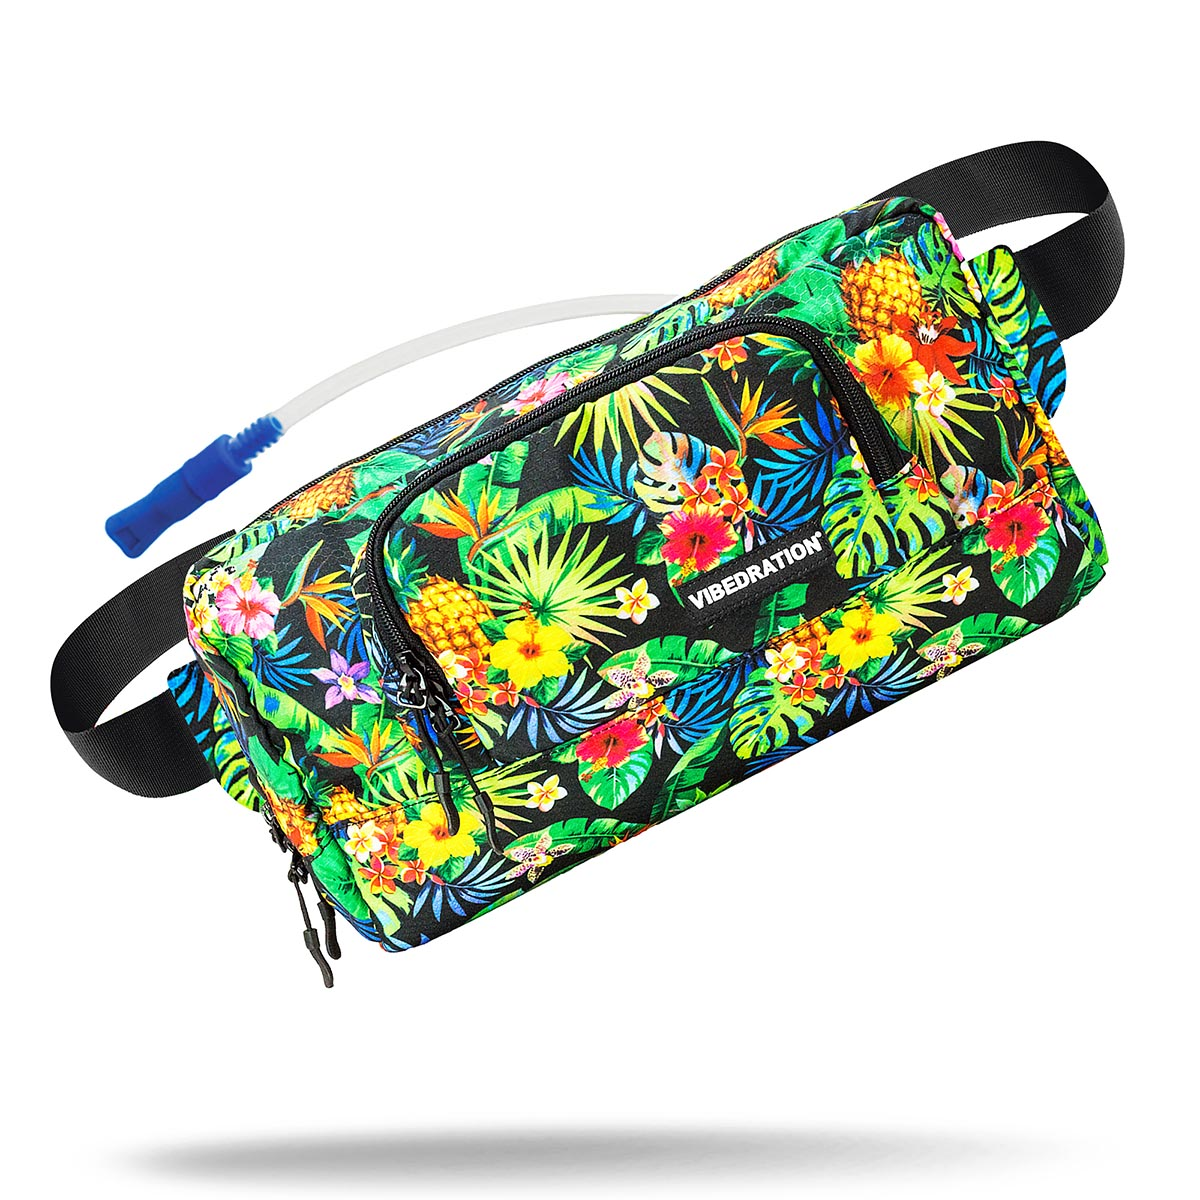 Tropical fusion crossbody 1.5L bag